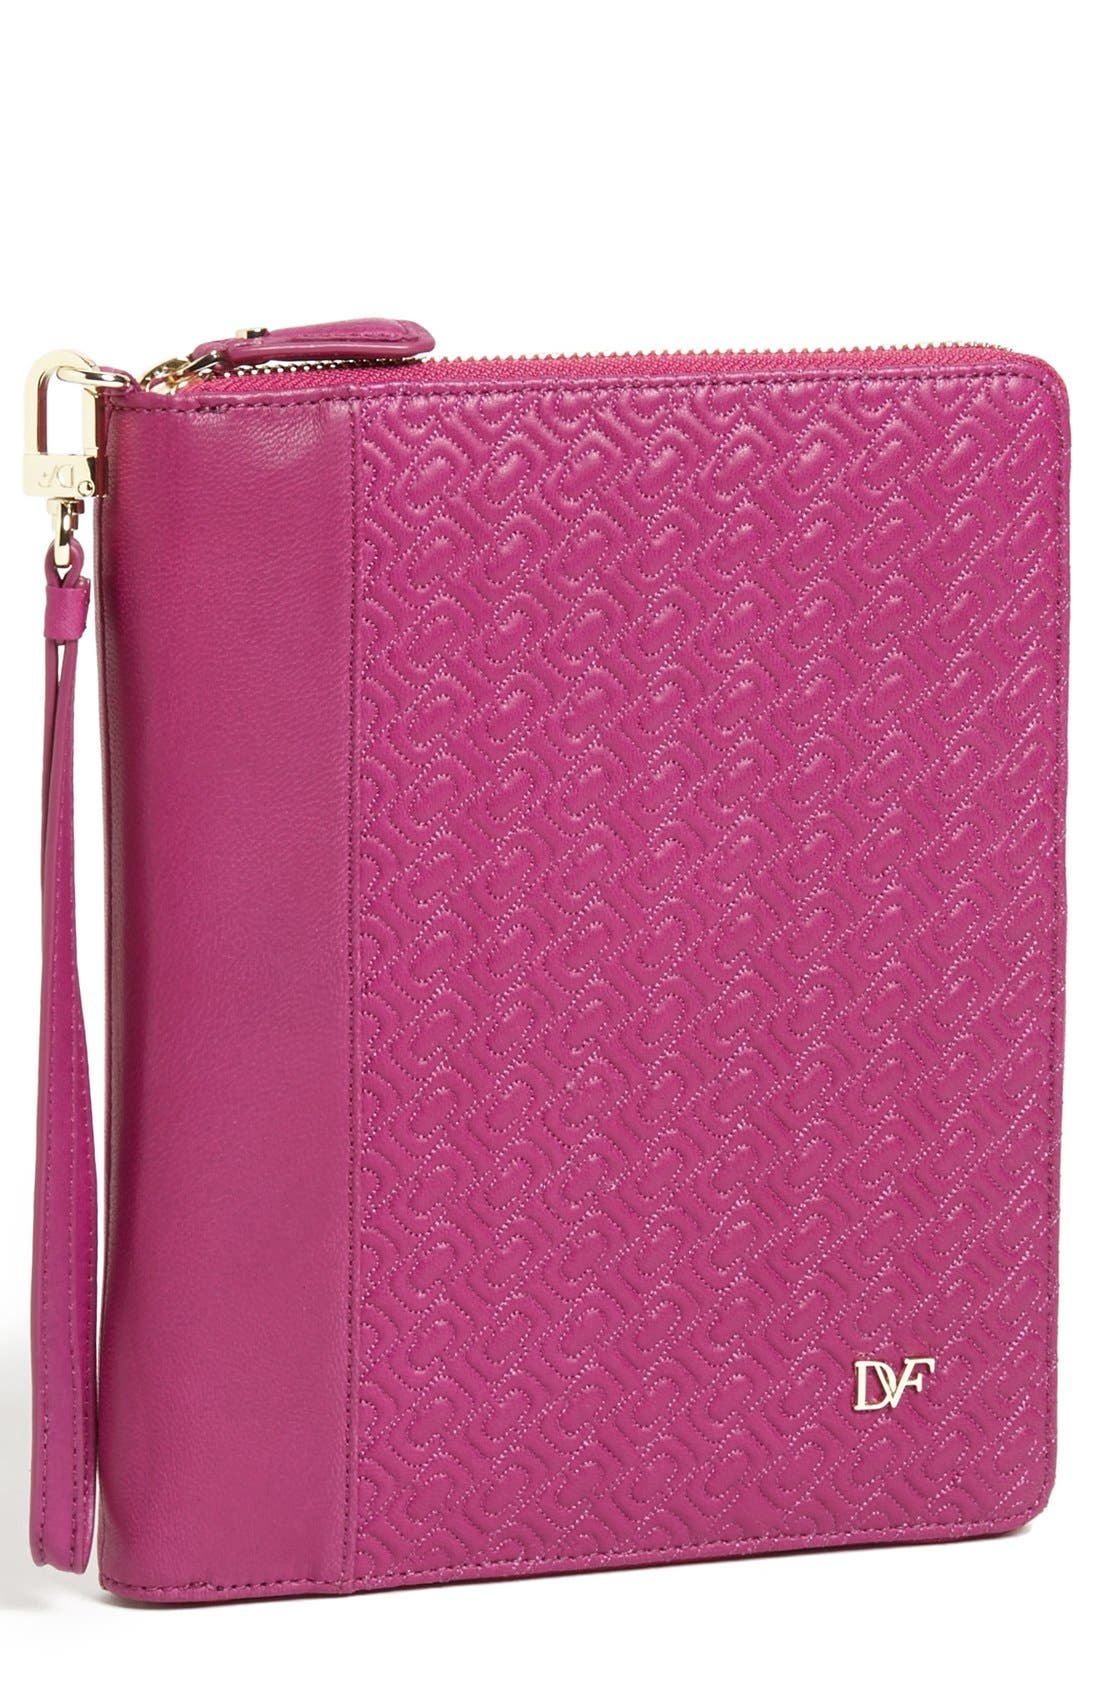 Alternate Image 1 Selected - Diane von Furstenberg 'Chain Link' Quilted iPad Mini Case